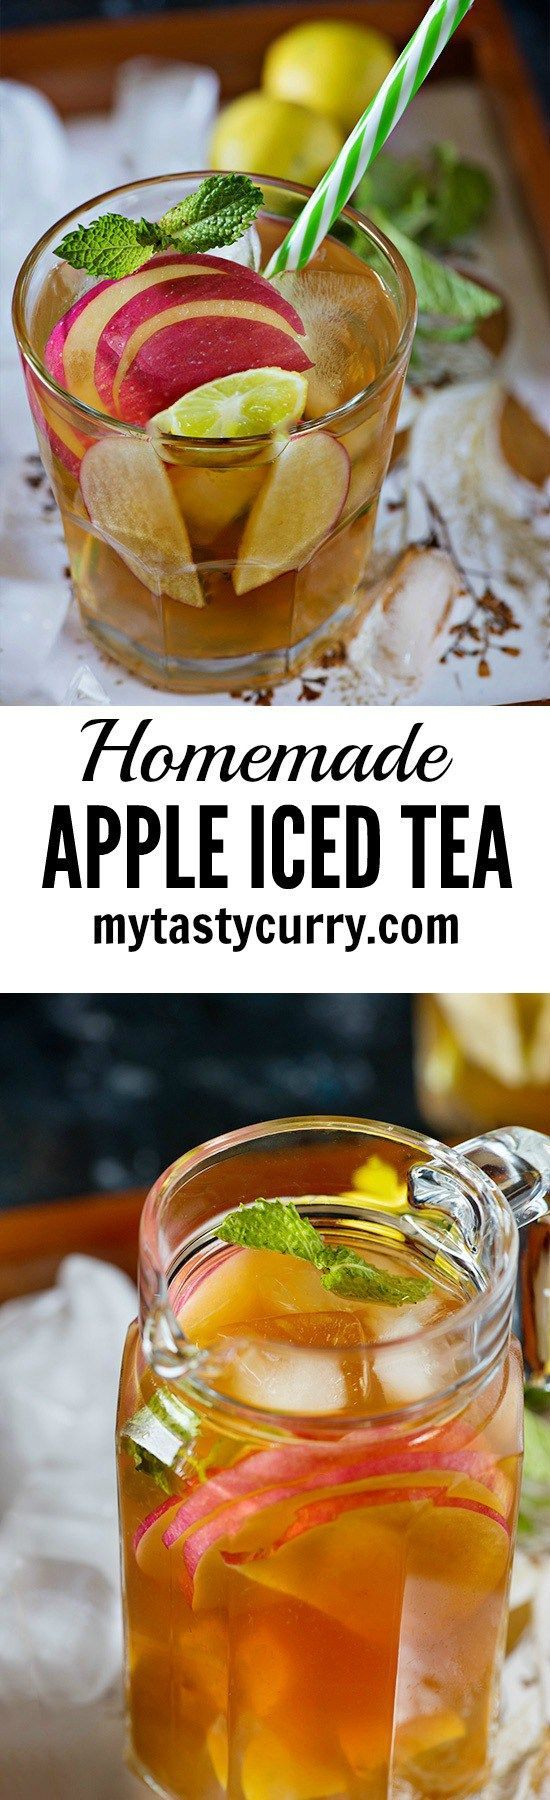 Homemade Apple Ice Tea. Simple and so easy to make and absolutely perfect summertime drink recipe.    This summer try this delicious Apple iced tea recipe for a refreshed and rejuvenated feeling!